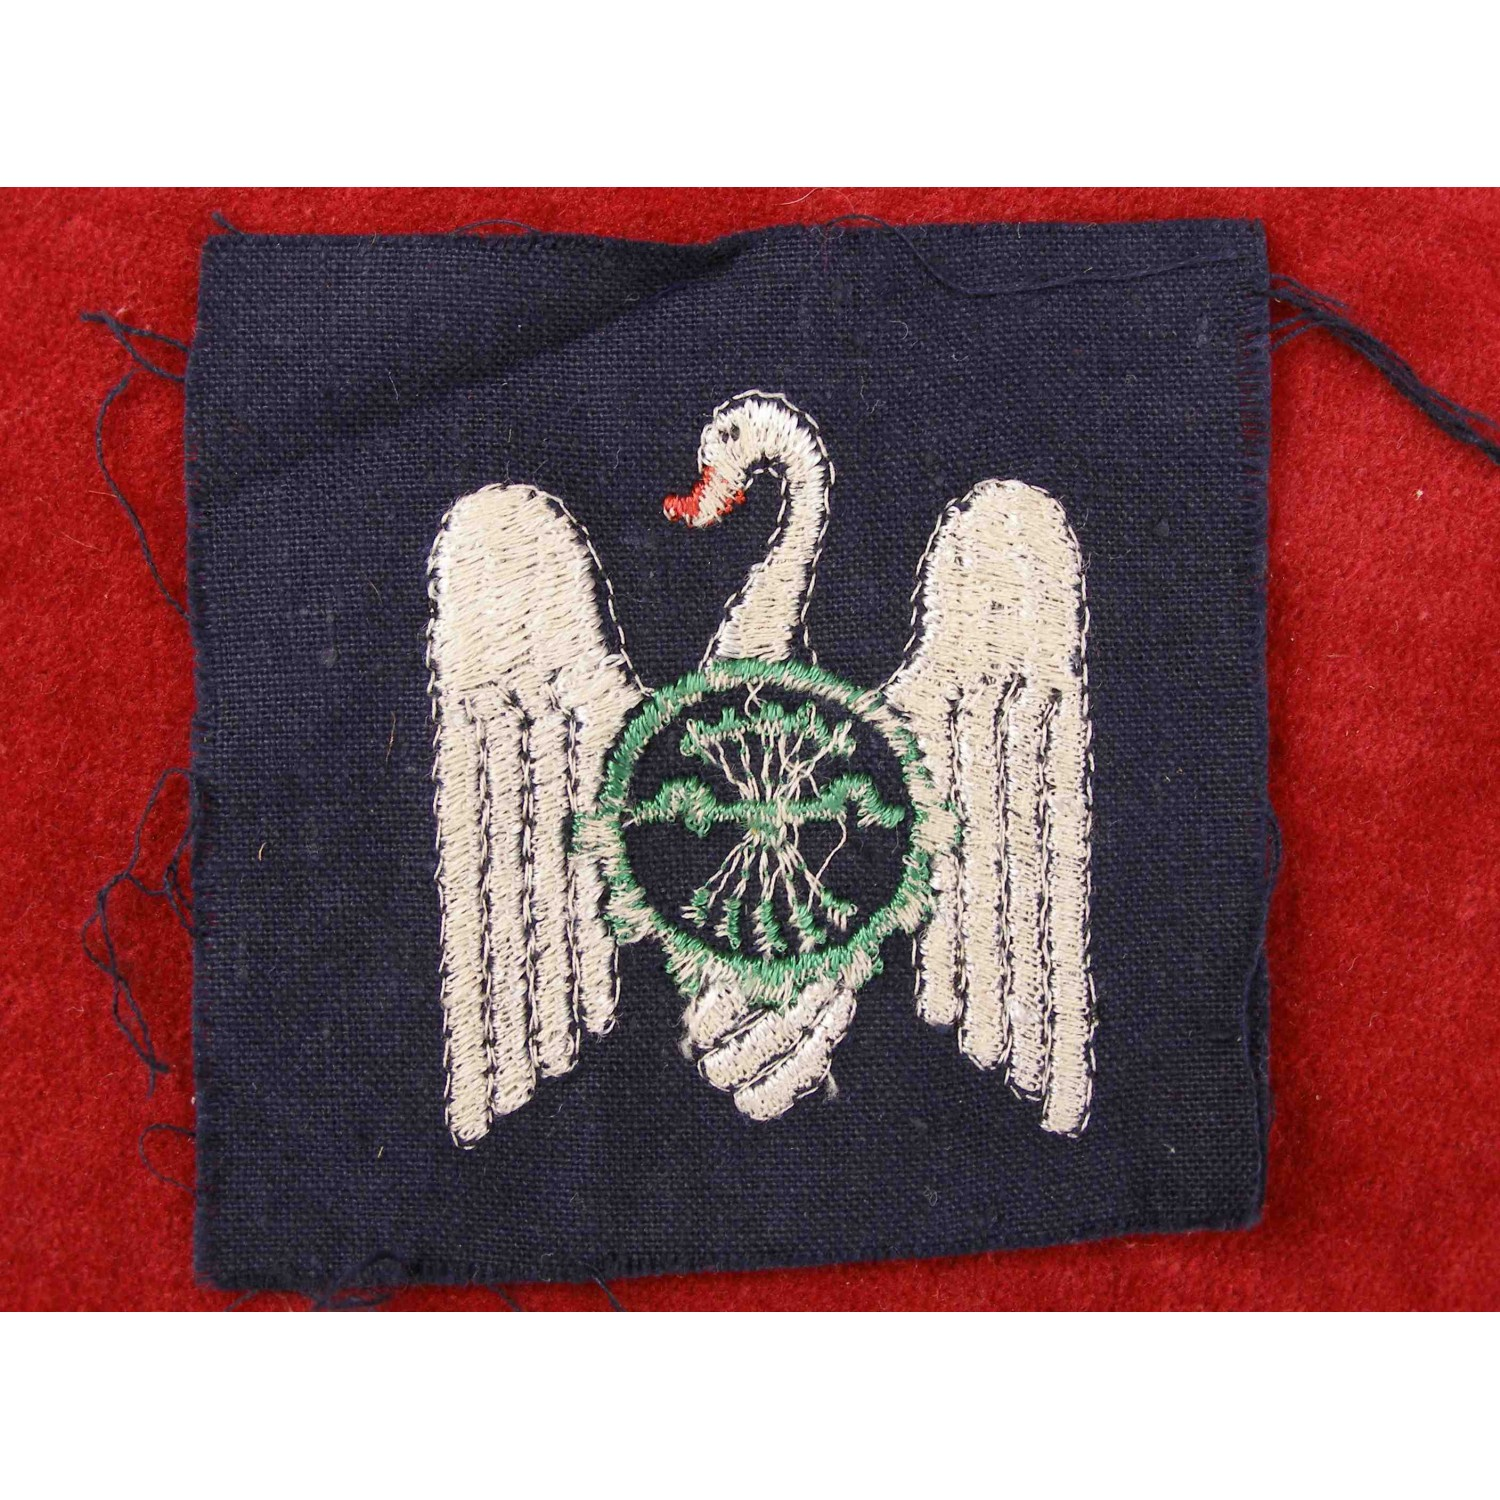 Spanish Civil War Nationalist Youth Cloth Badge